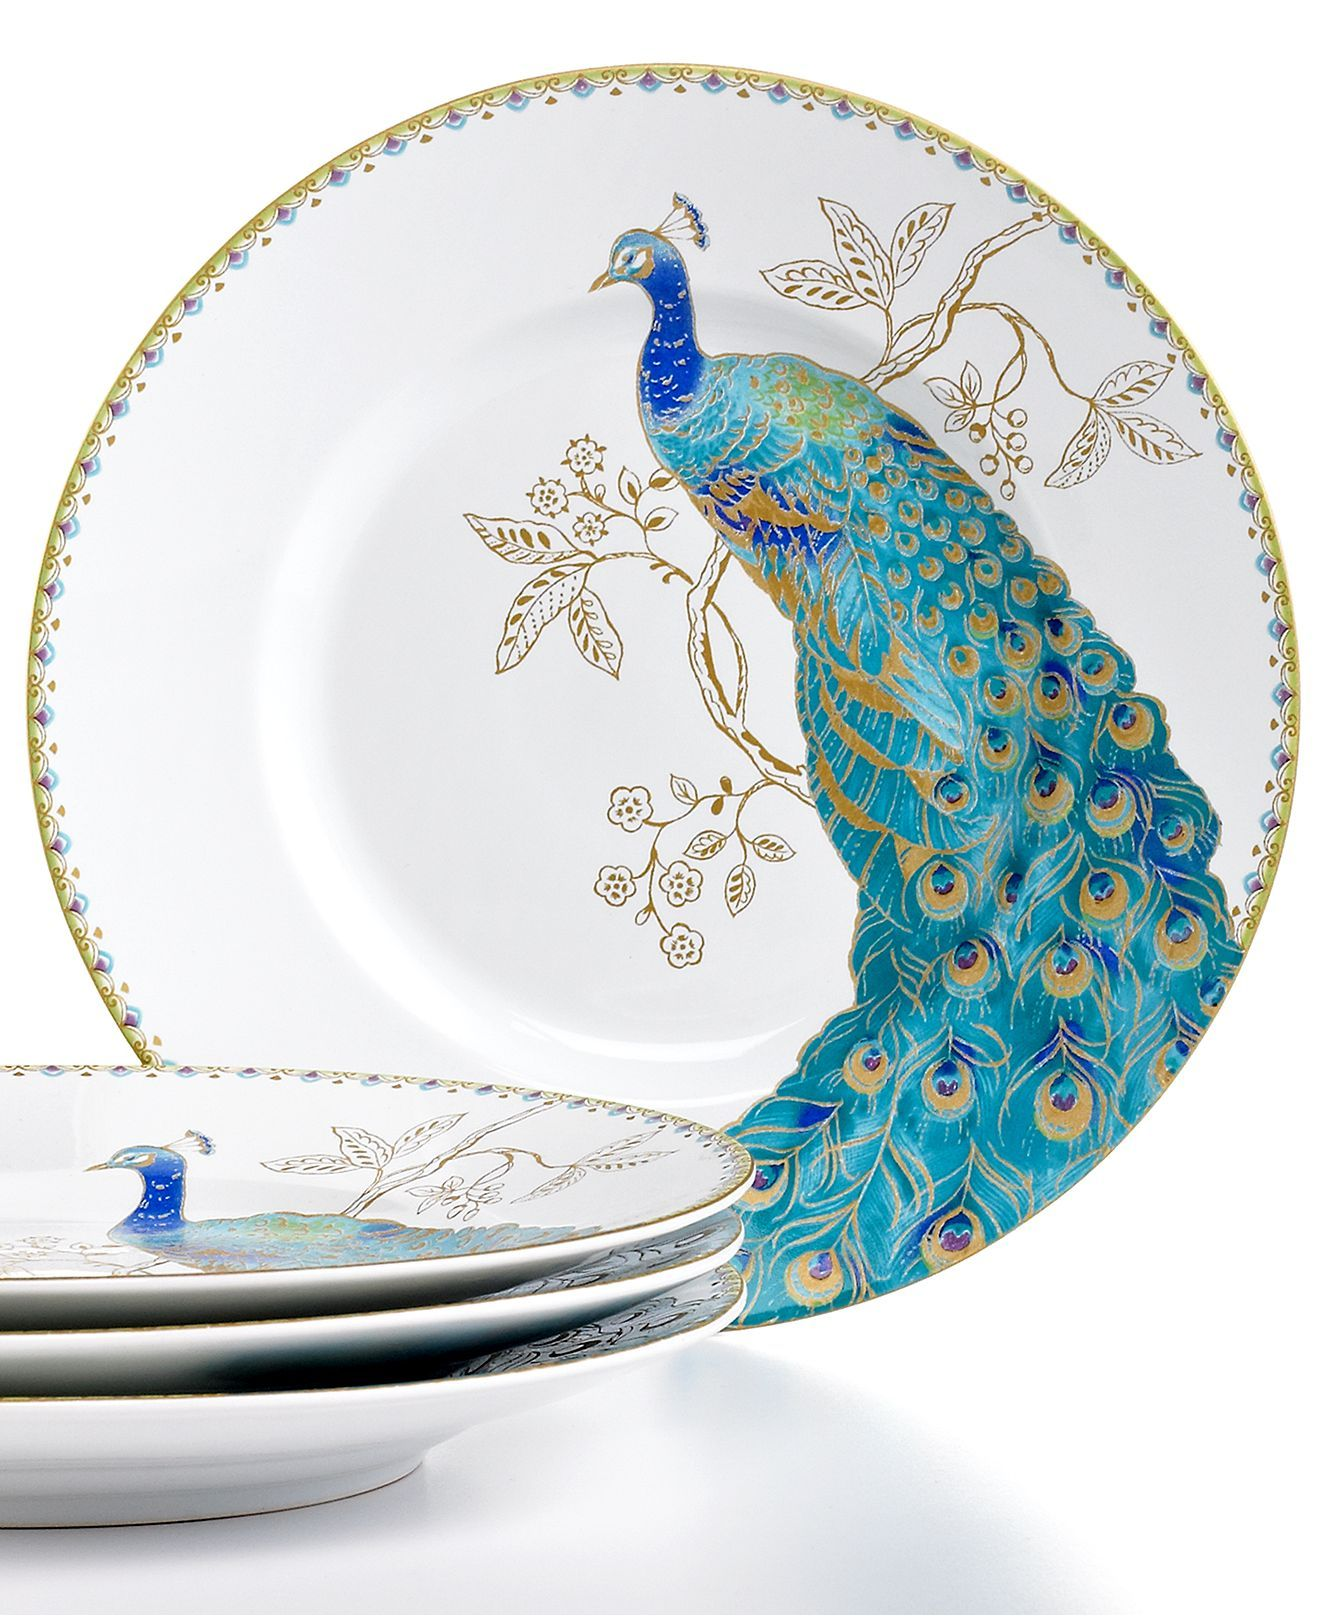 222 Fifth Dinnerware Set of 4 Peacock Garden Salad Plates - Casual Dinnerware - Dining  sc 1 st  Pinterest & 222 Fifth Dinnerware Set of 4 Peacock Garden Salad Plates - Casual ...